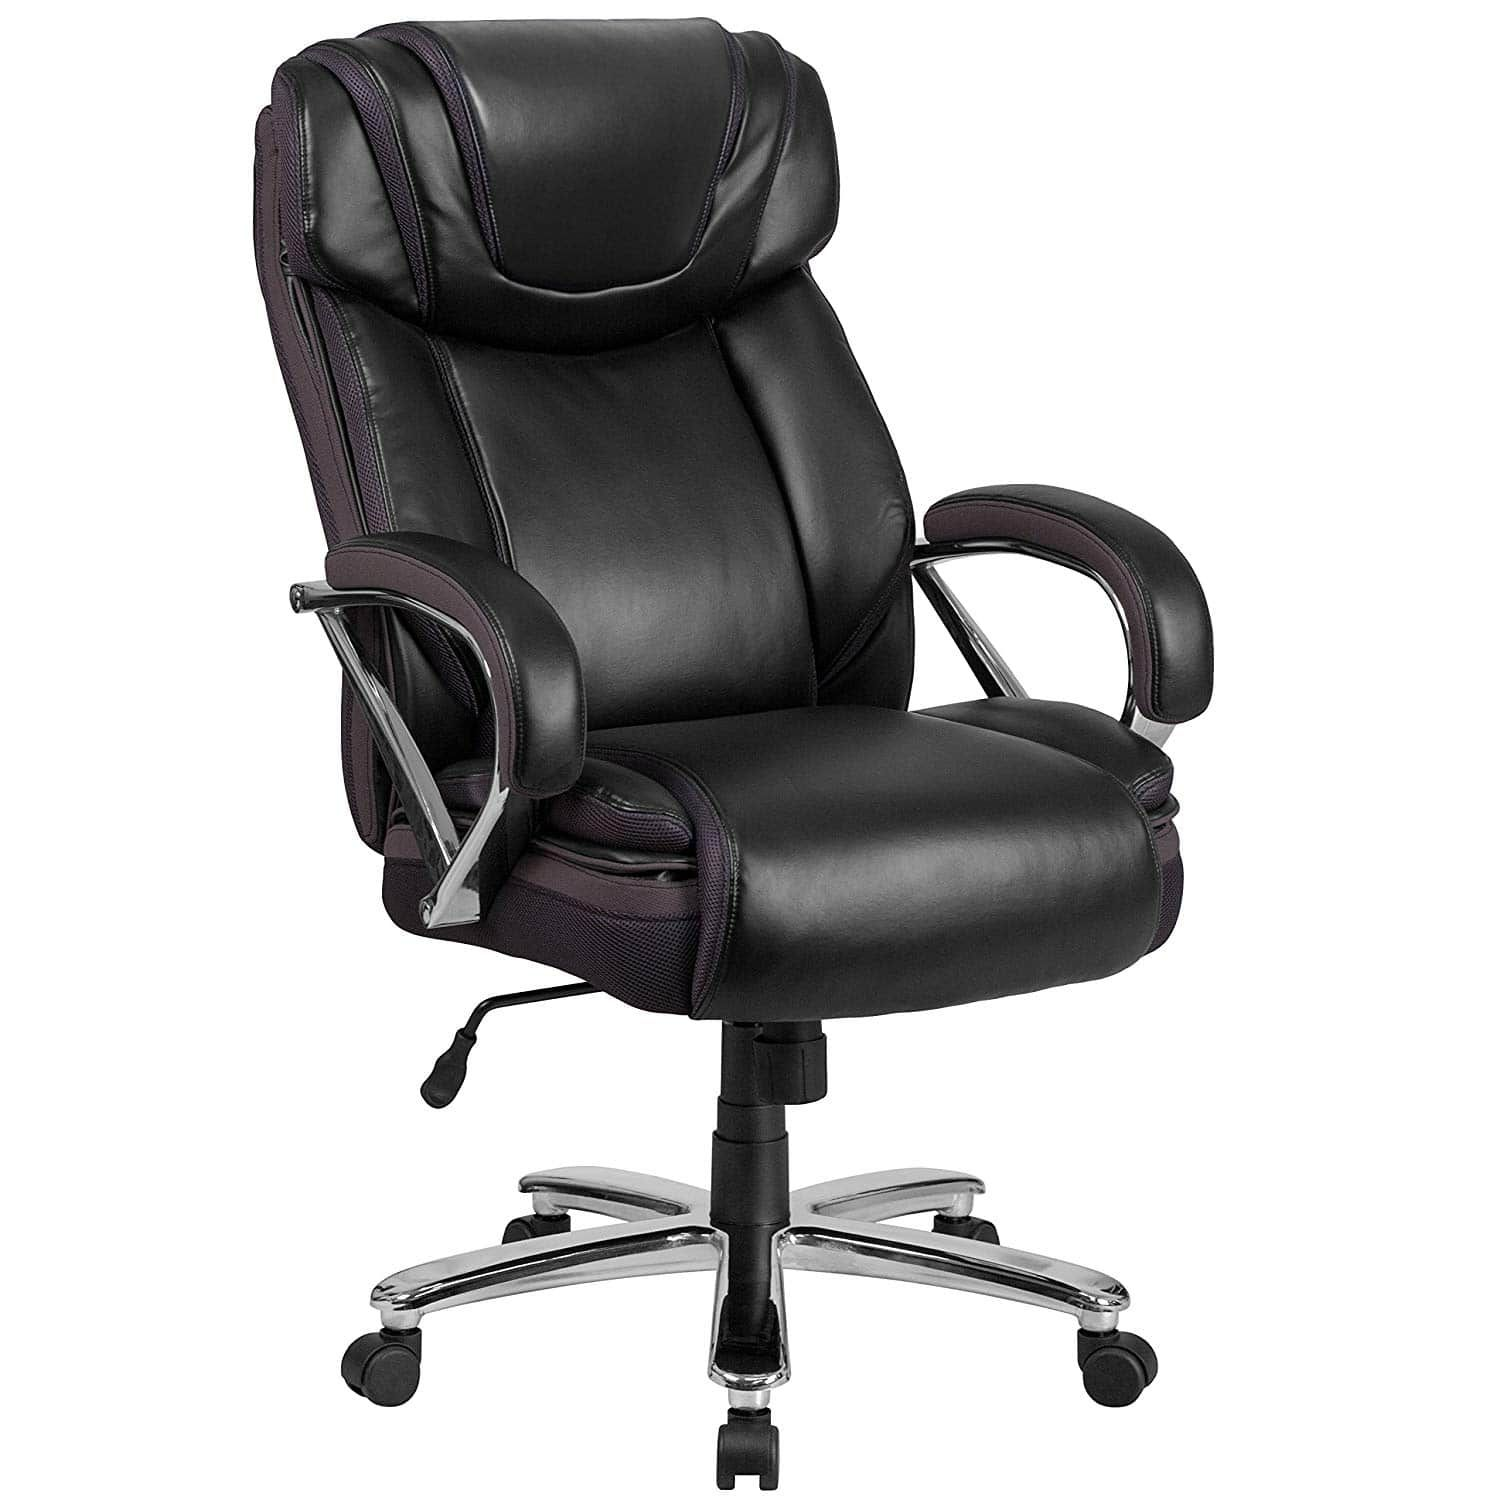 Best Office Chairs For Big Guys Reviews Best Heavy Duty Office Chair In 2020 Black Leather Office Chair Leather Office Chair Best Office Chair